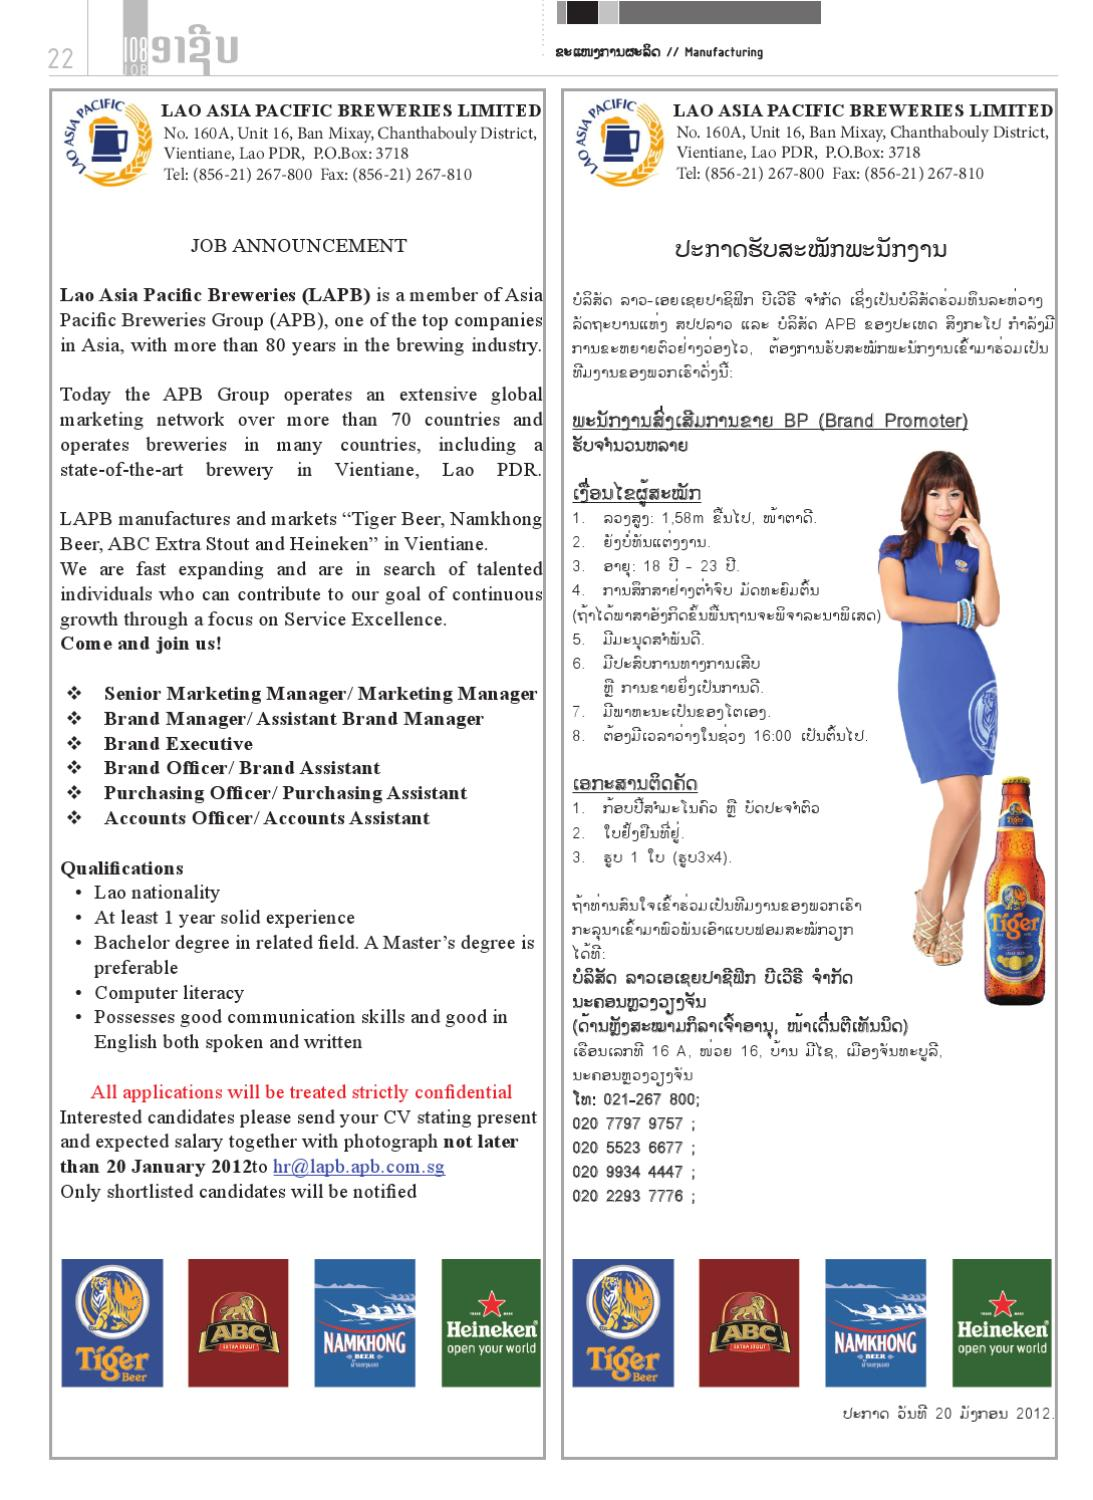 lao asia pacific breweries limited